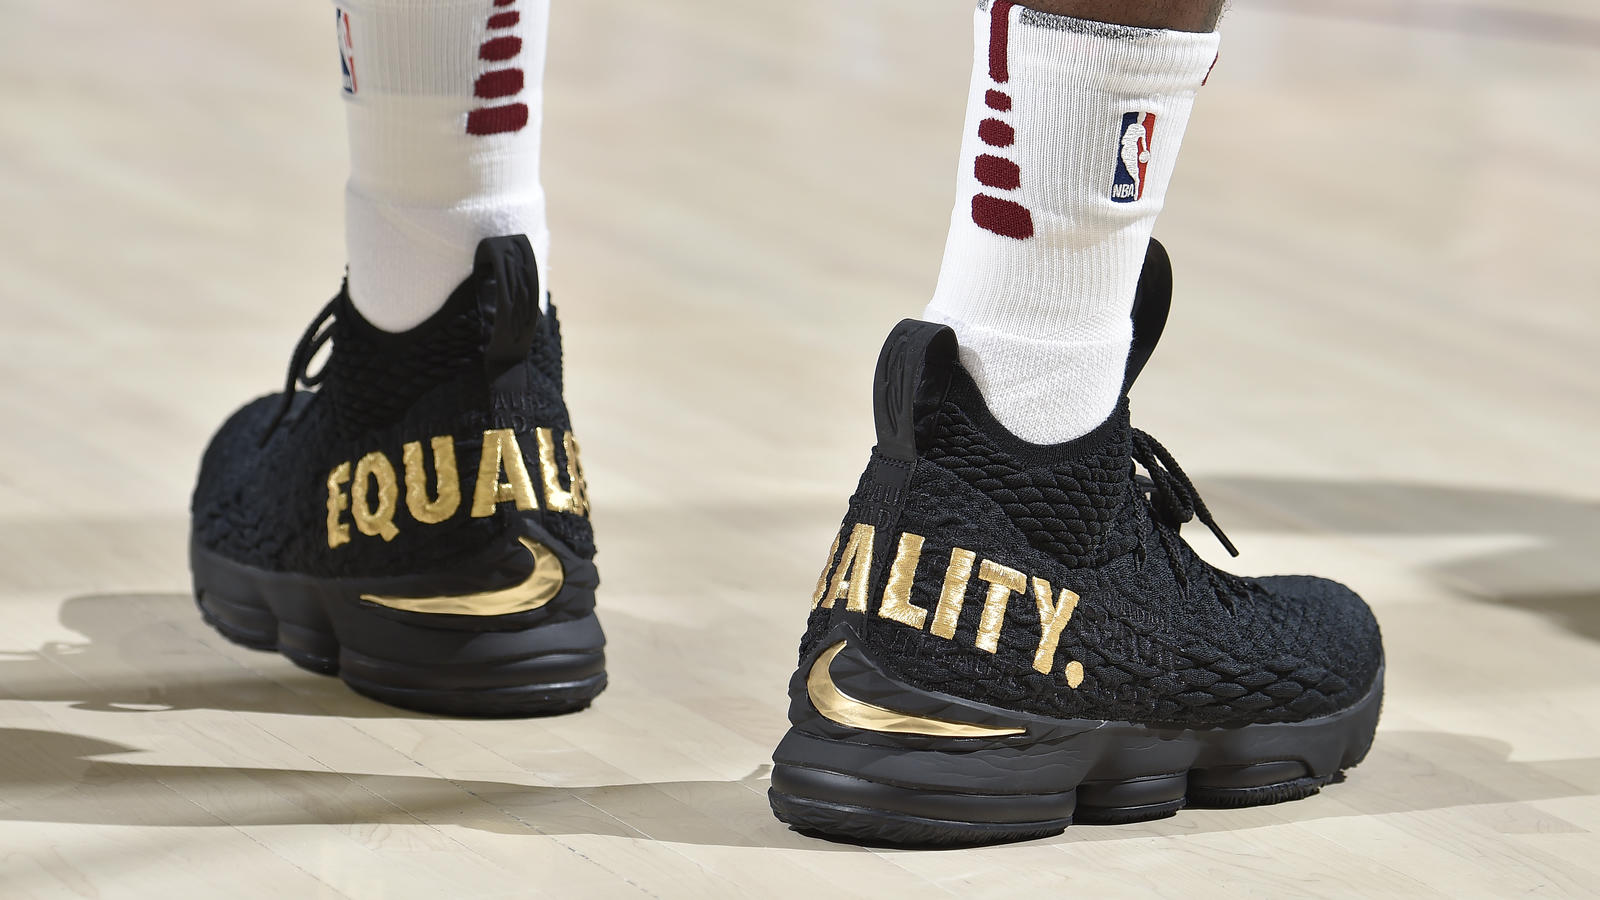 Win A Pair of Nike LeBron 15 EQUALITY Sneakers - Nike News fe6757f39